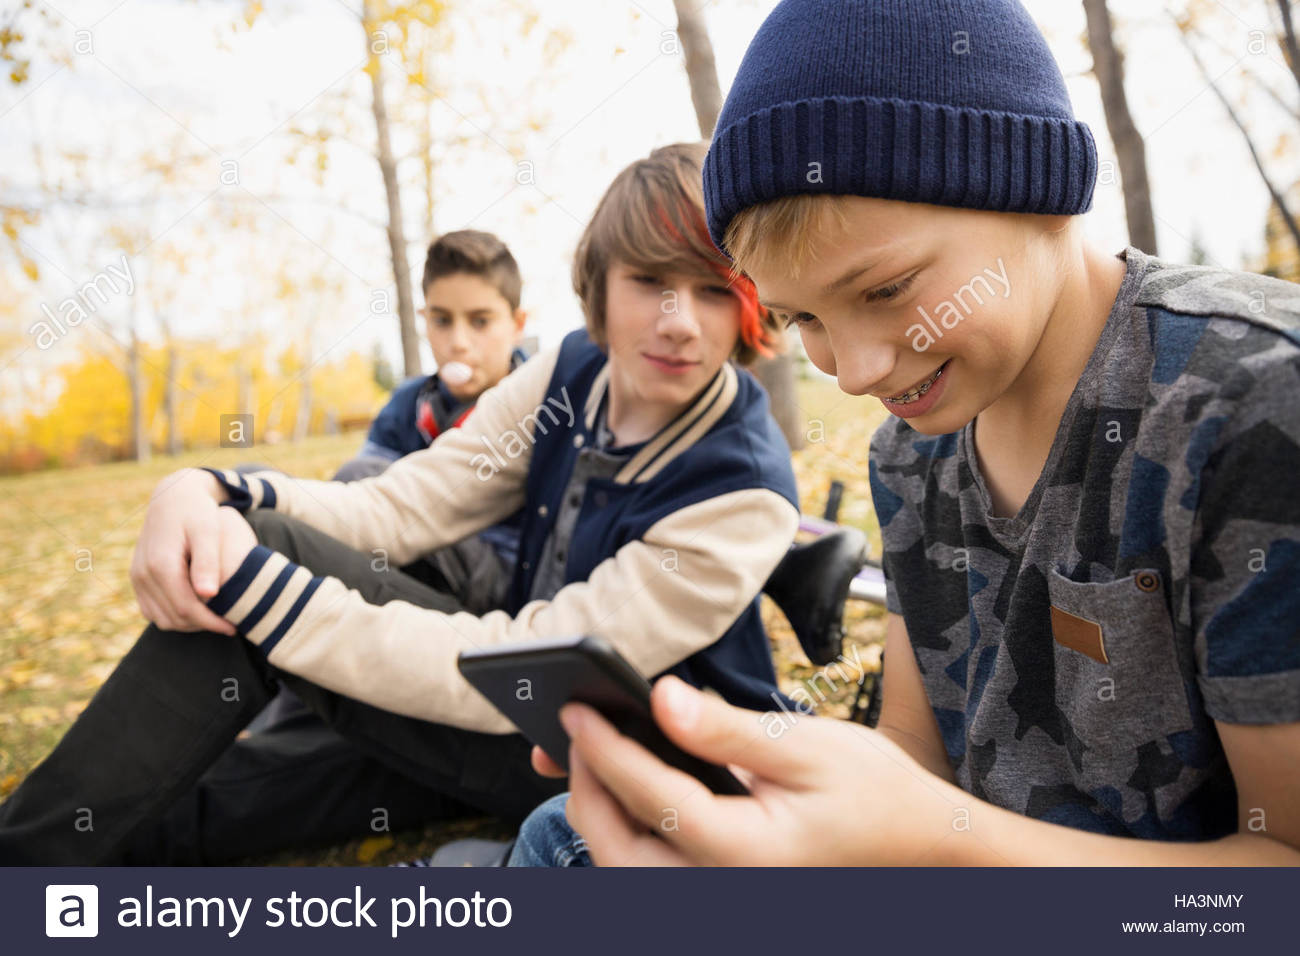 Tween boys texting with cell phone in autumn park - Stock Image